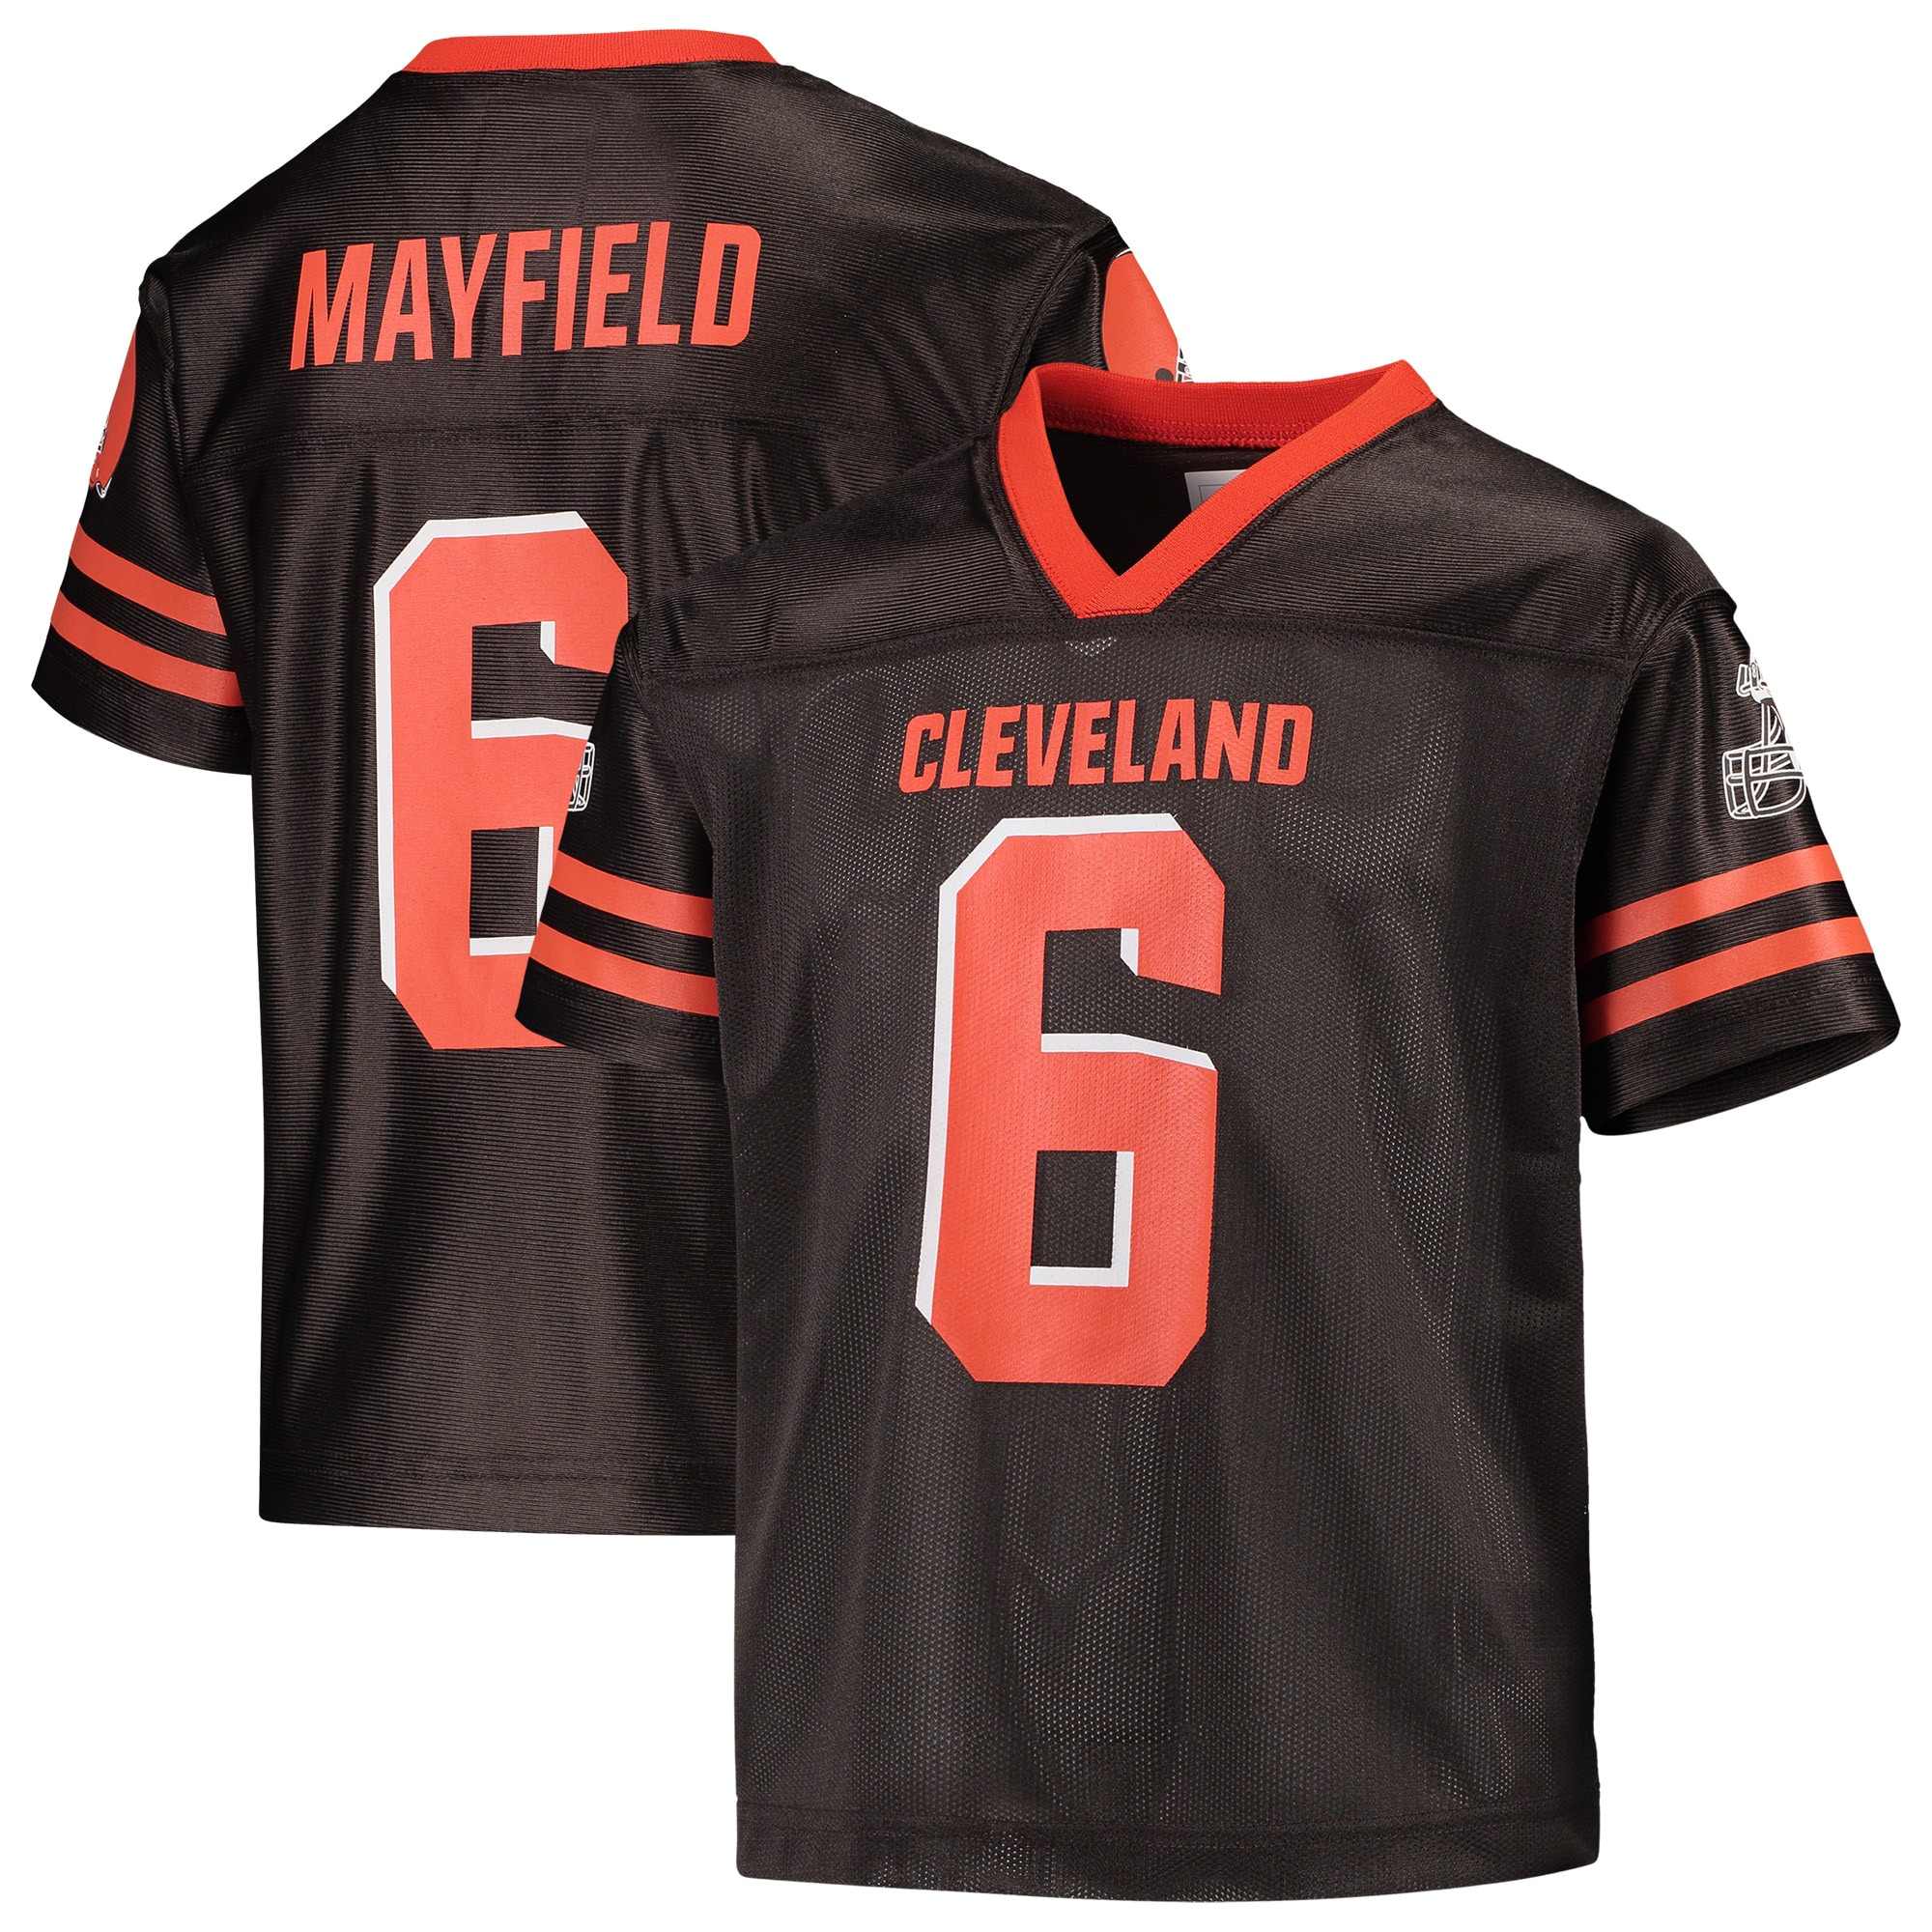 Youth Baker Mayfield Brown Cleveland Browns Replica Jersey - Walmart.com